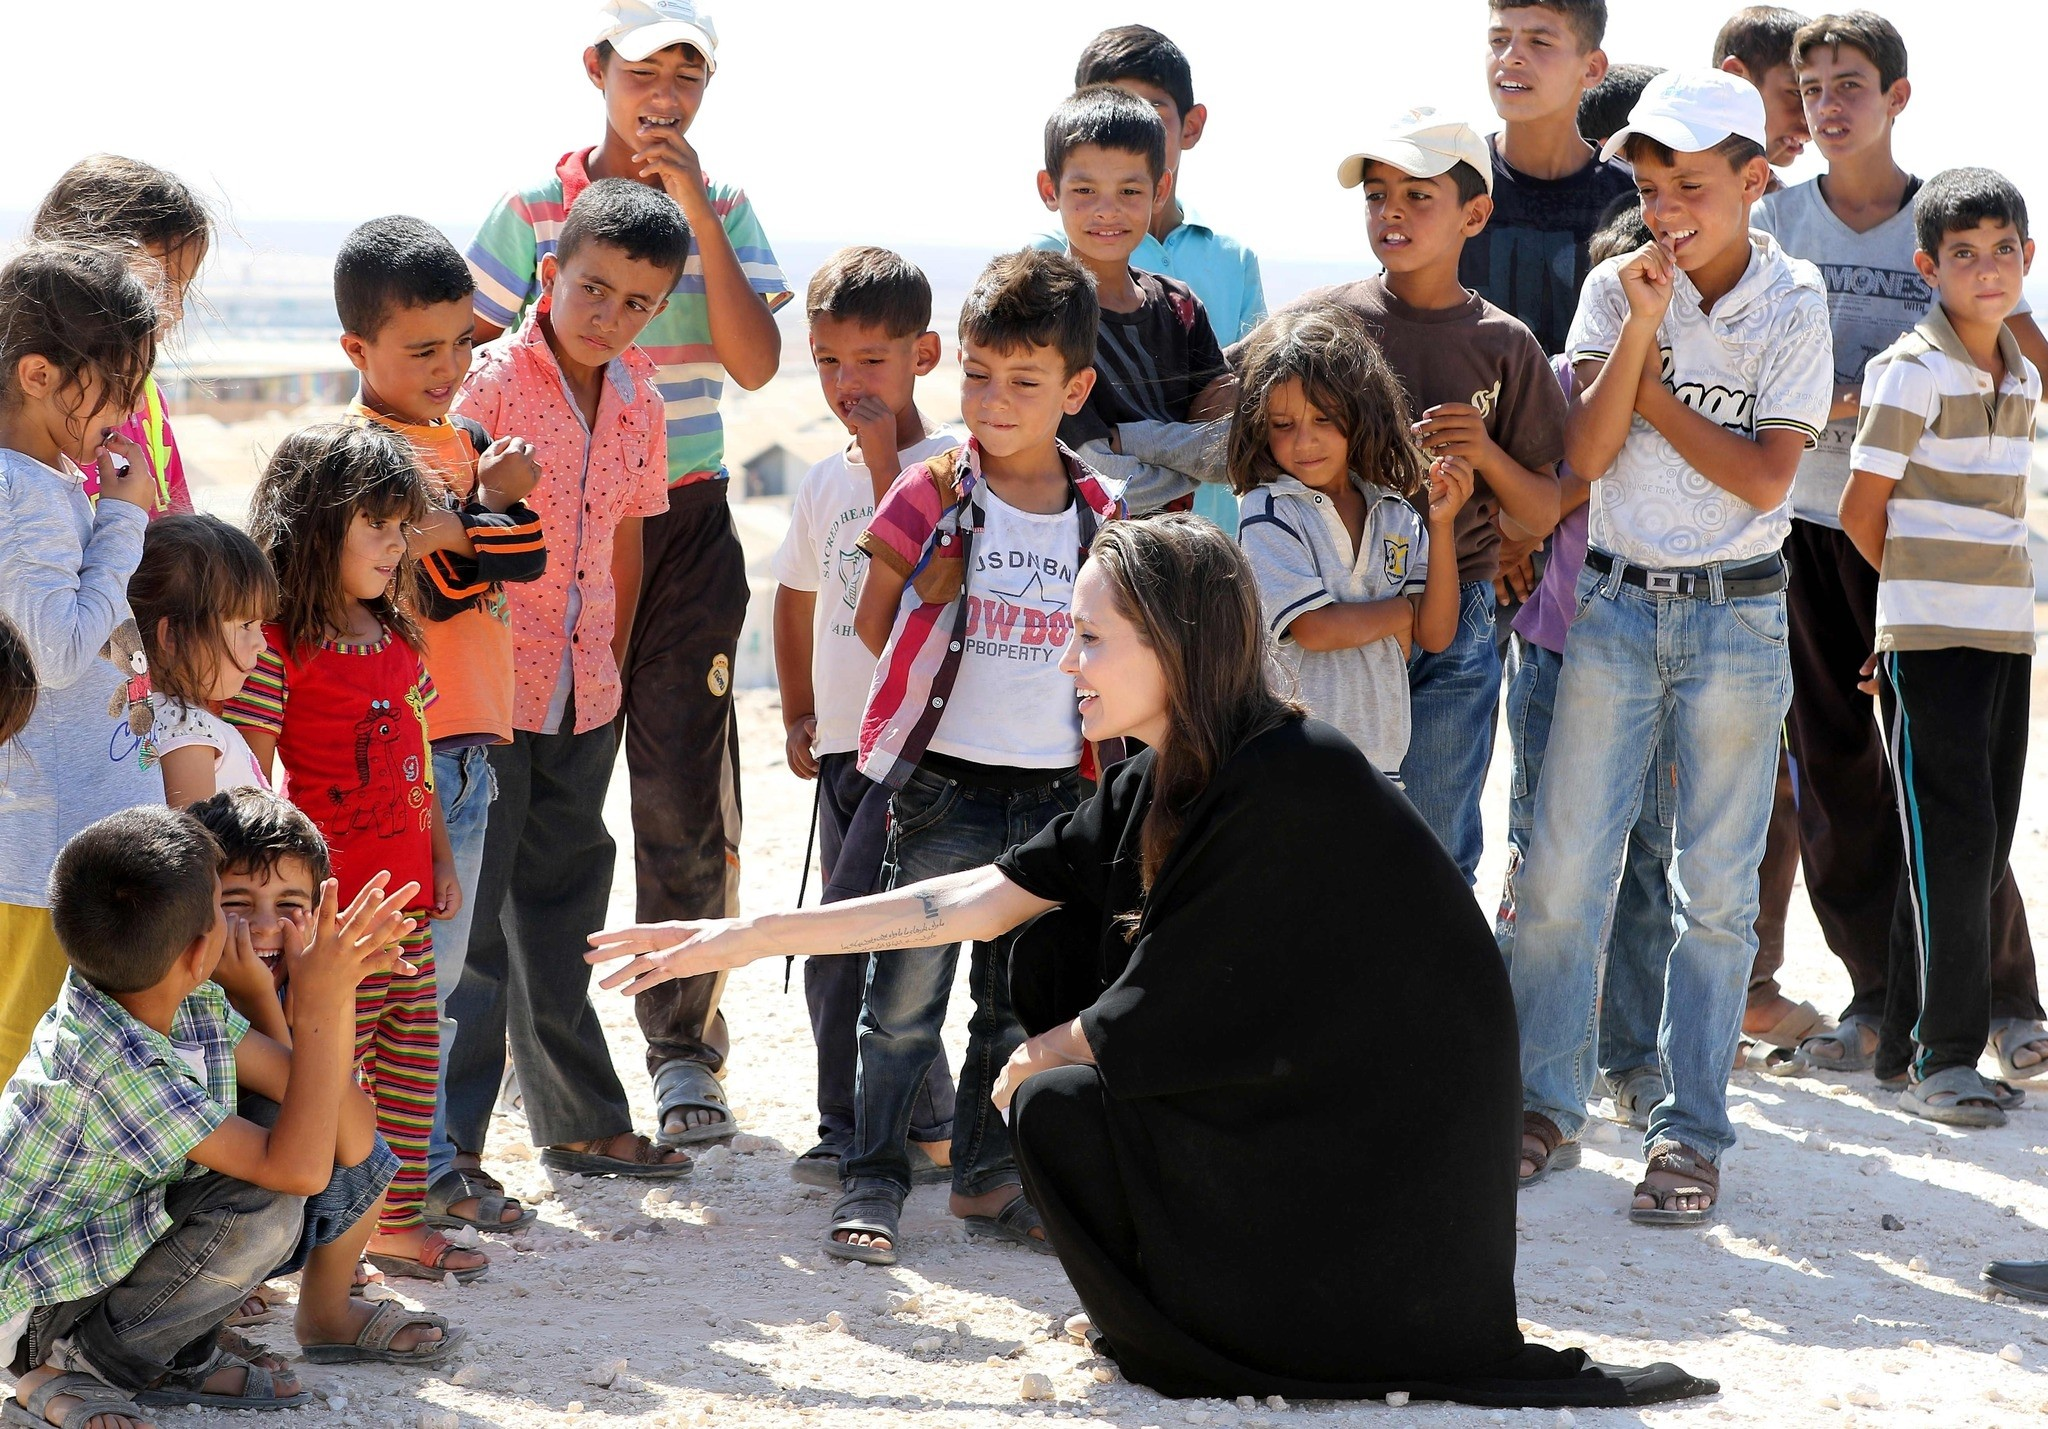 US actress and UNHCR special envoy Angelina Jolie (C) talks to children during a visit to a Syrian refugee camp in Azraq in northern Jordan, on September 9, 2016. (AFP PHOTO)